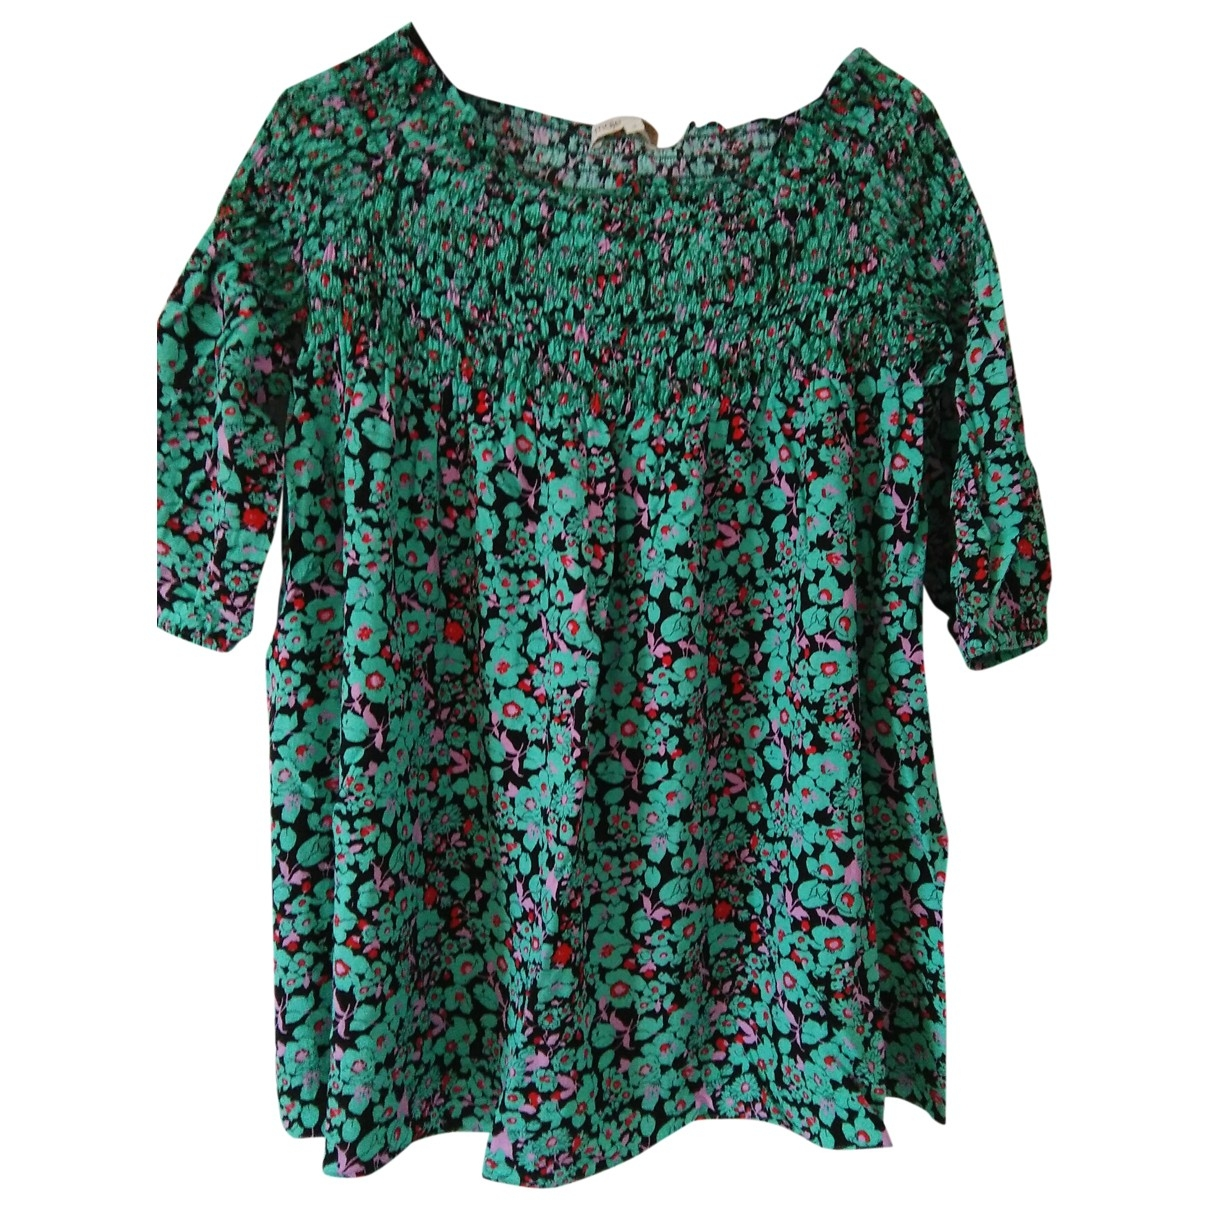 Maje \N Green  top for Women 3 0-5